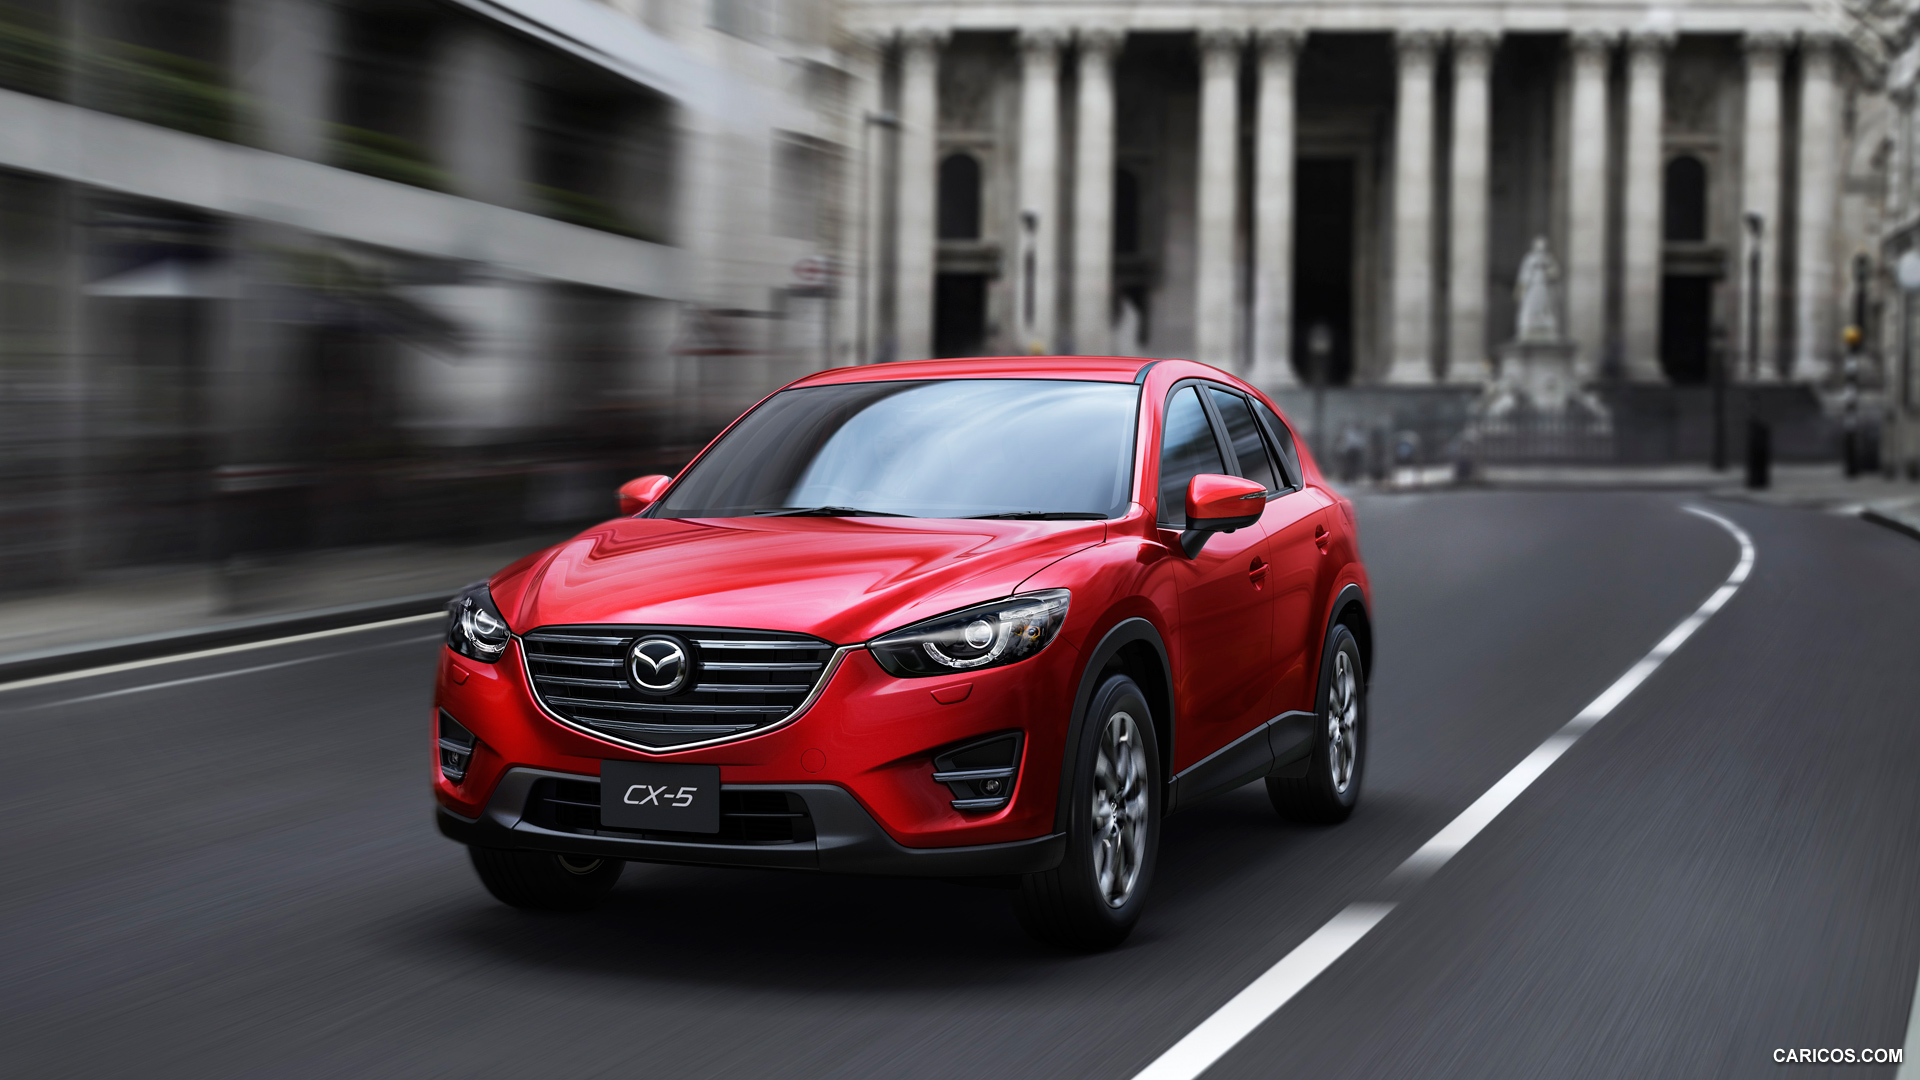 1920x1080 - Mazda CX-5 Wallpapers 12